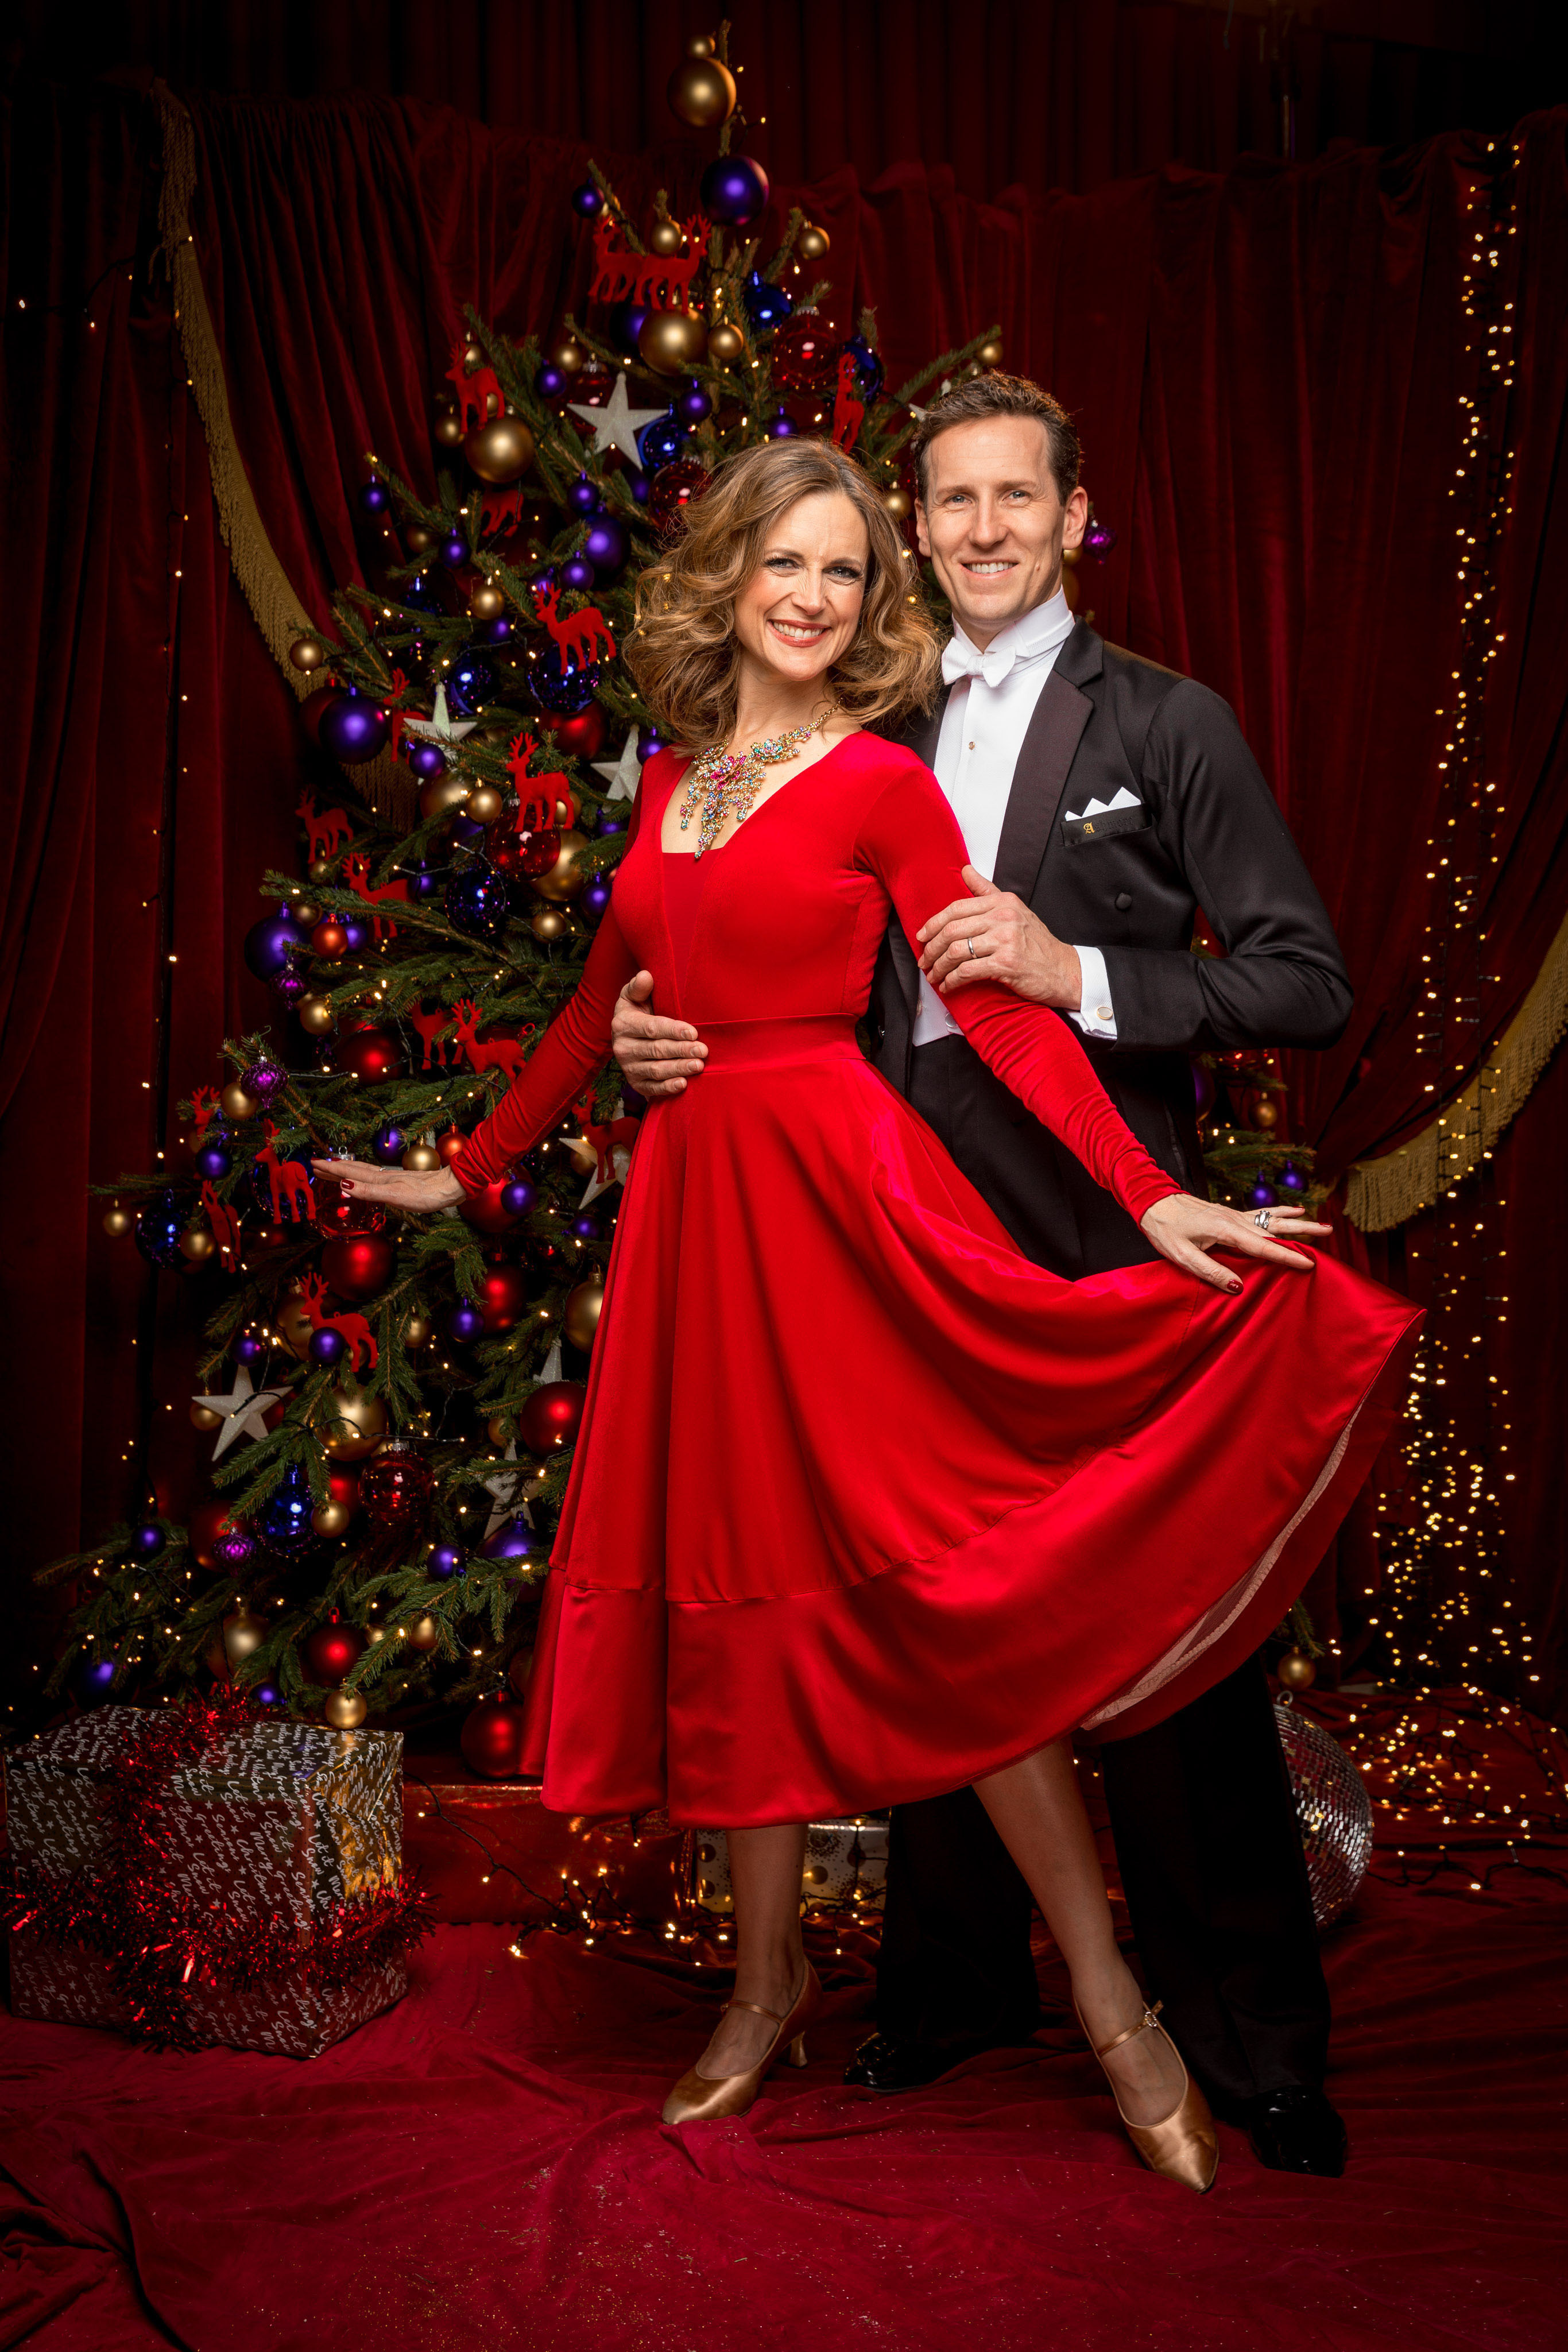 Strictly Christmas Special To Be Hosted At Buckingham Palace Strictly Christmas Special To Be Hosted At Buckingham Palace new picture